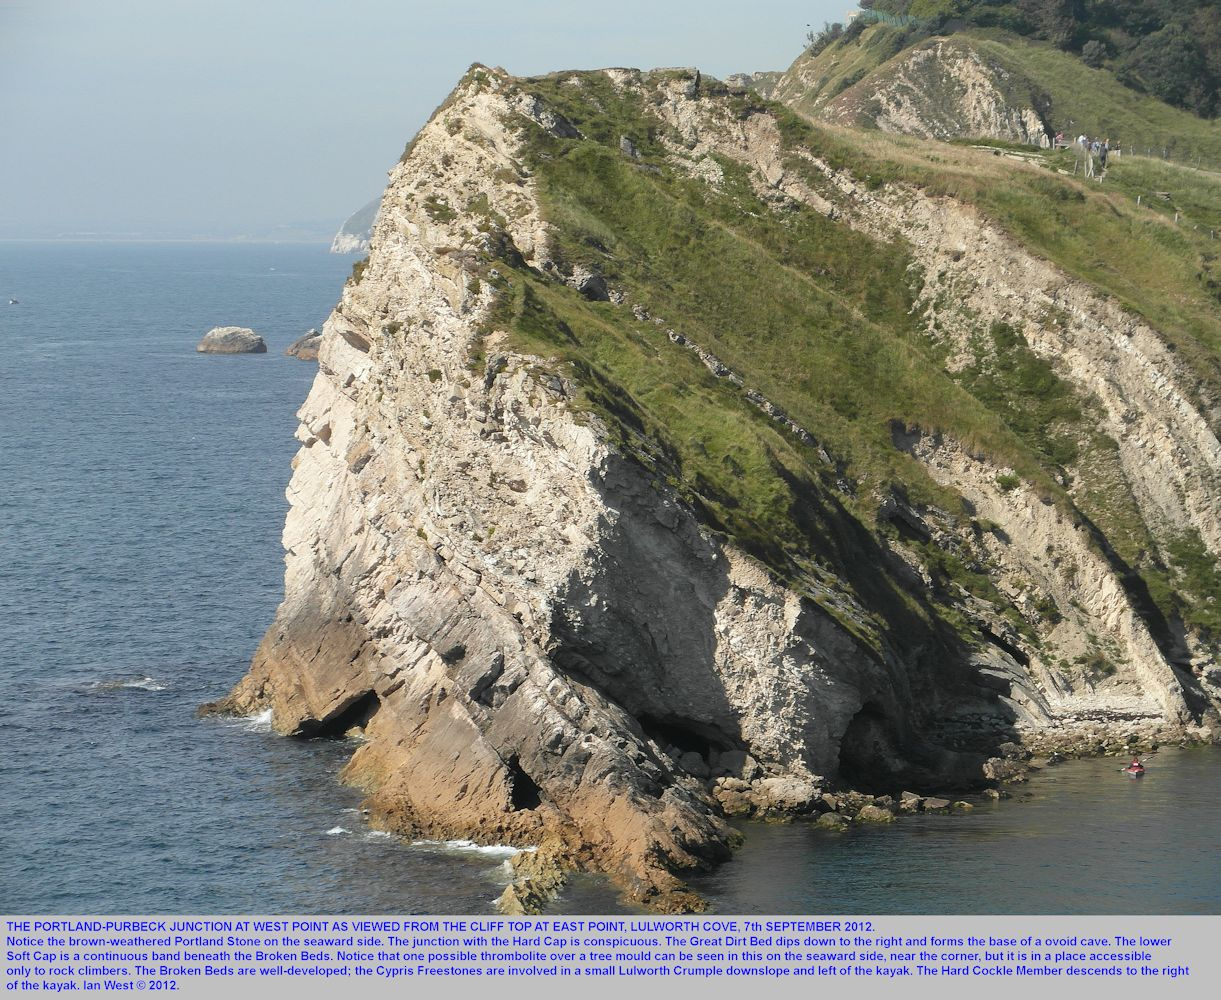 West Point, Lulworth Cove, Dorset, details of Purbeck strata, 8th September 2012